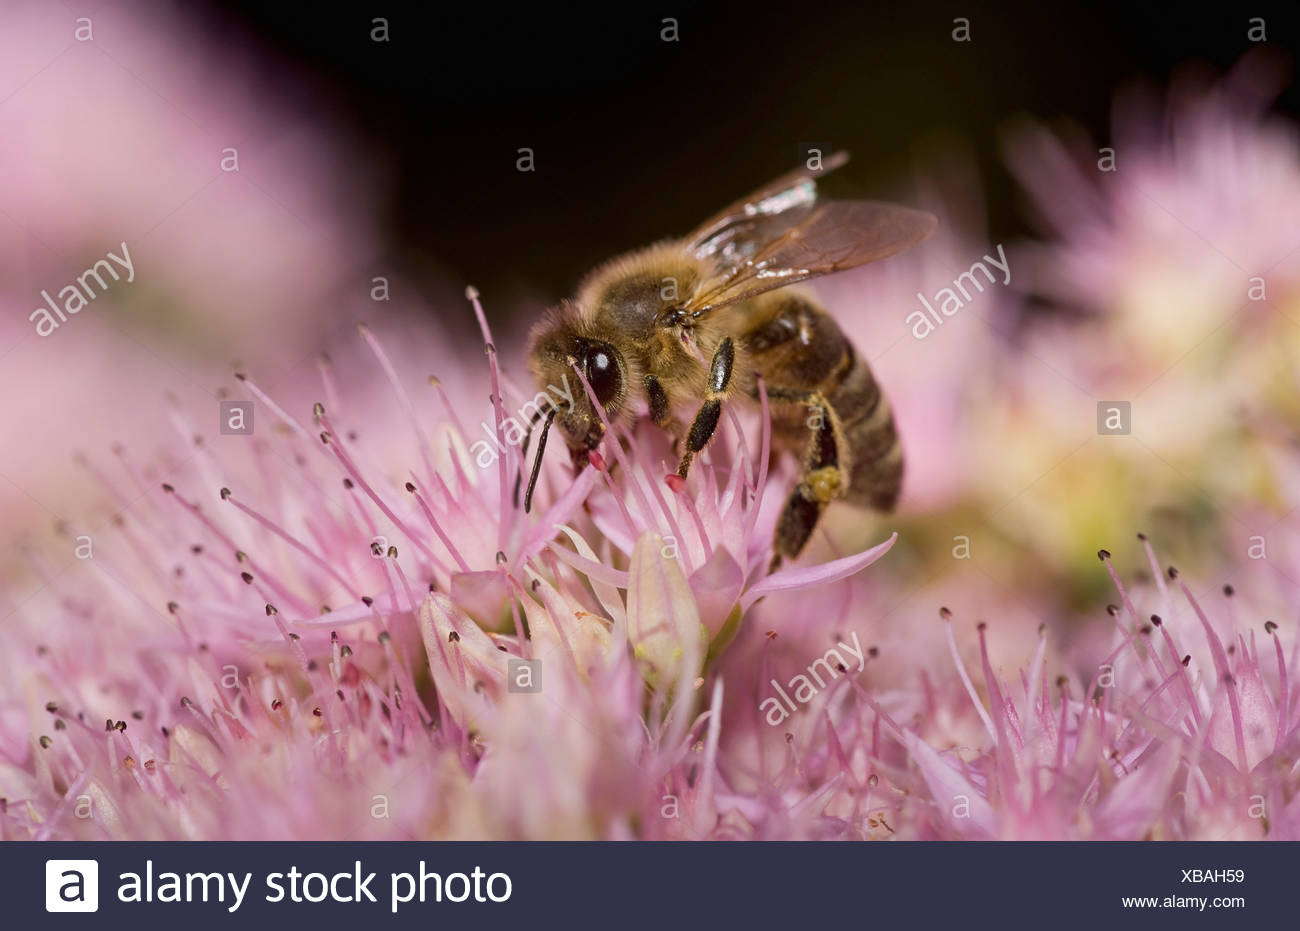 A honey bee (Apis mellifica) perched on a flower - Stock Image